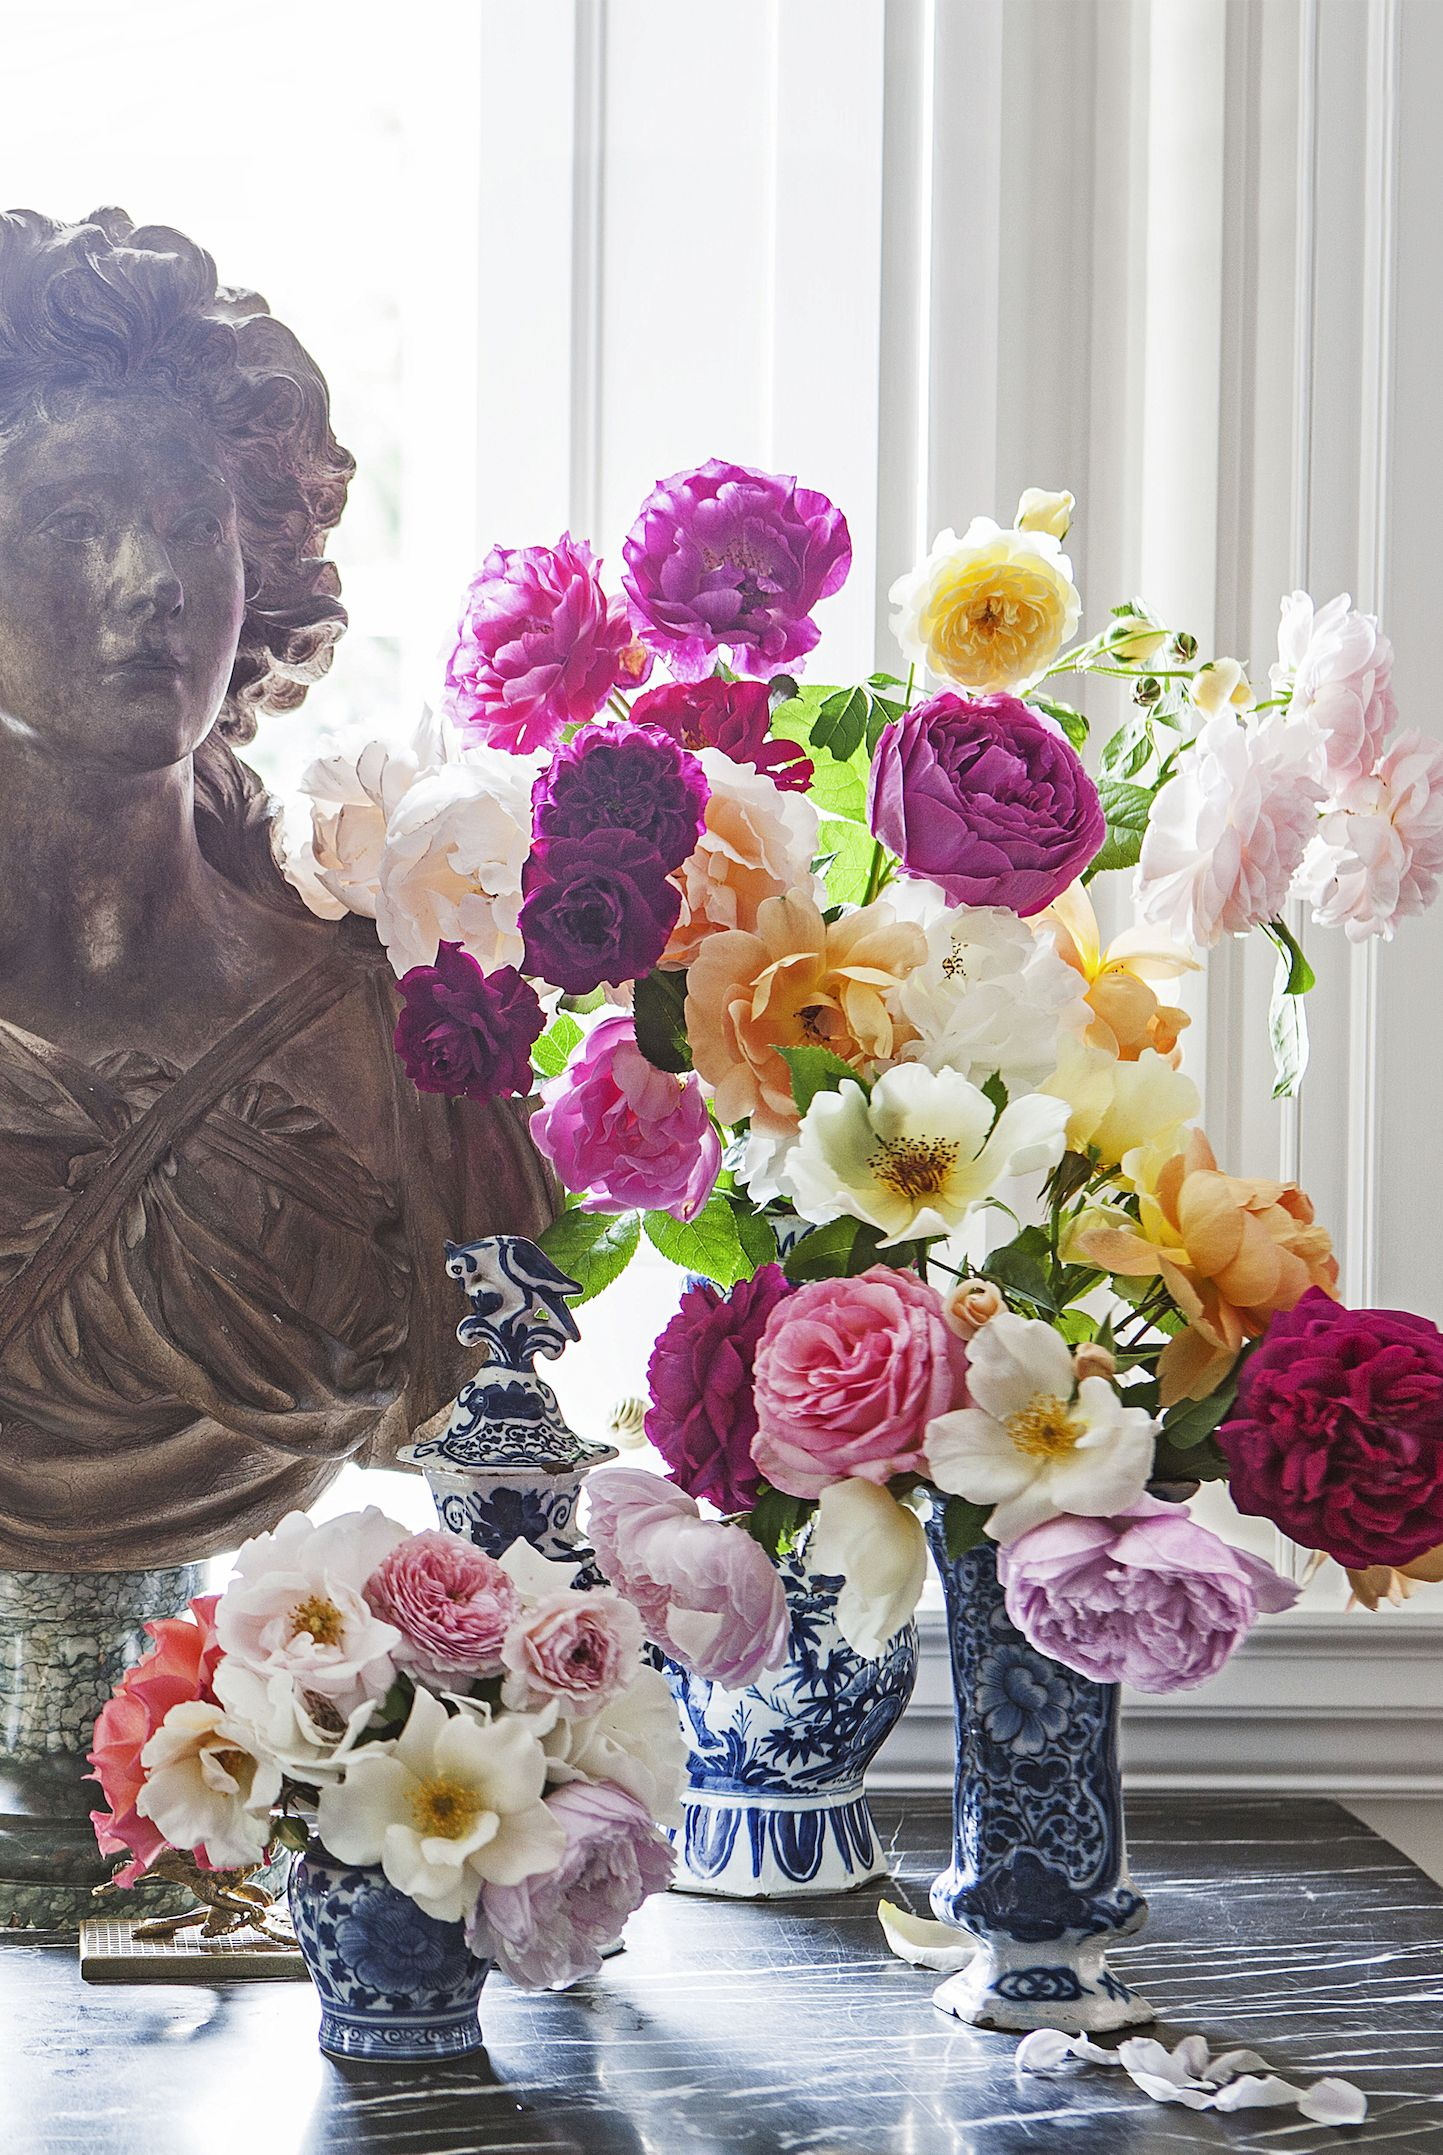 54 Flower Arrangements That'll Instantly Cheer Up Any Room